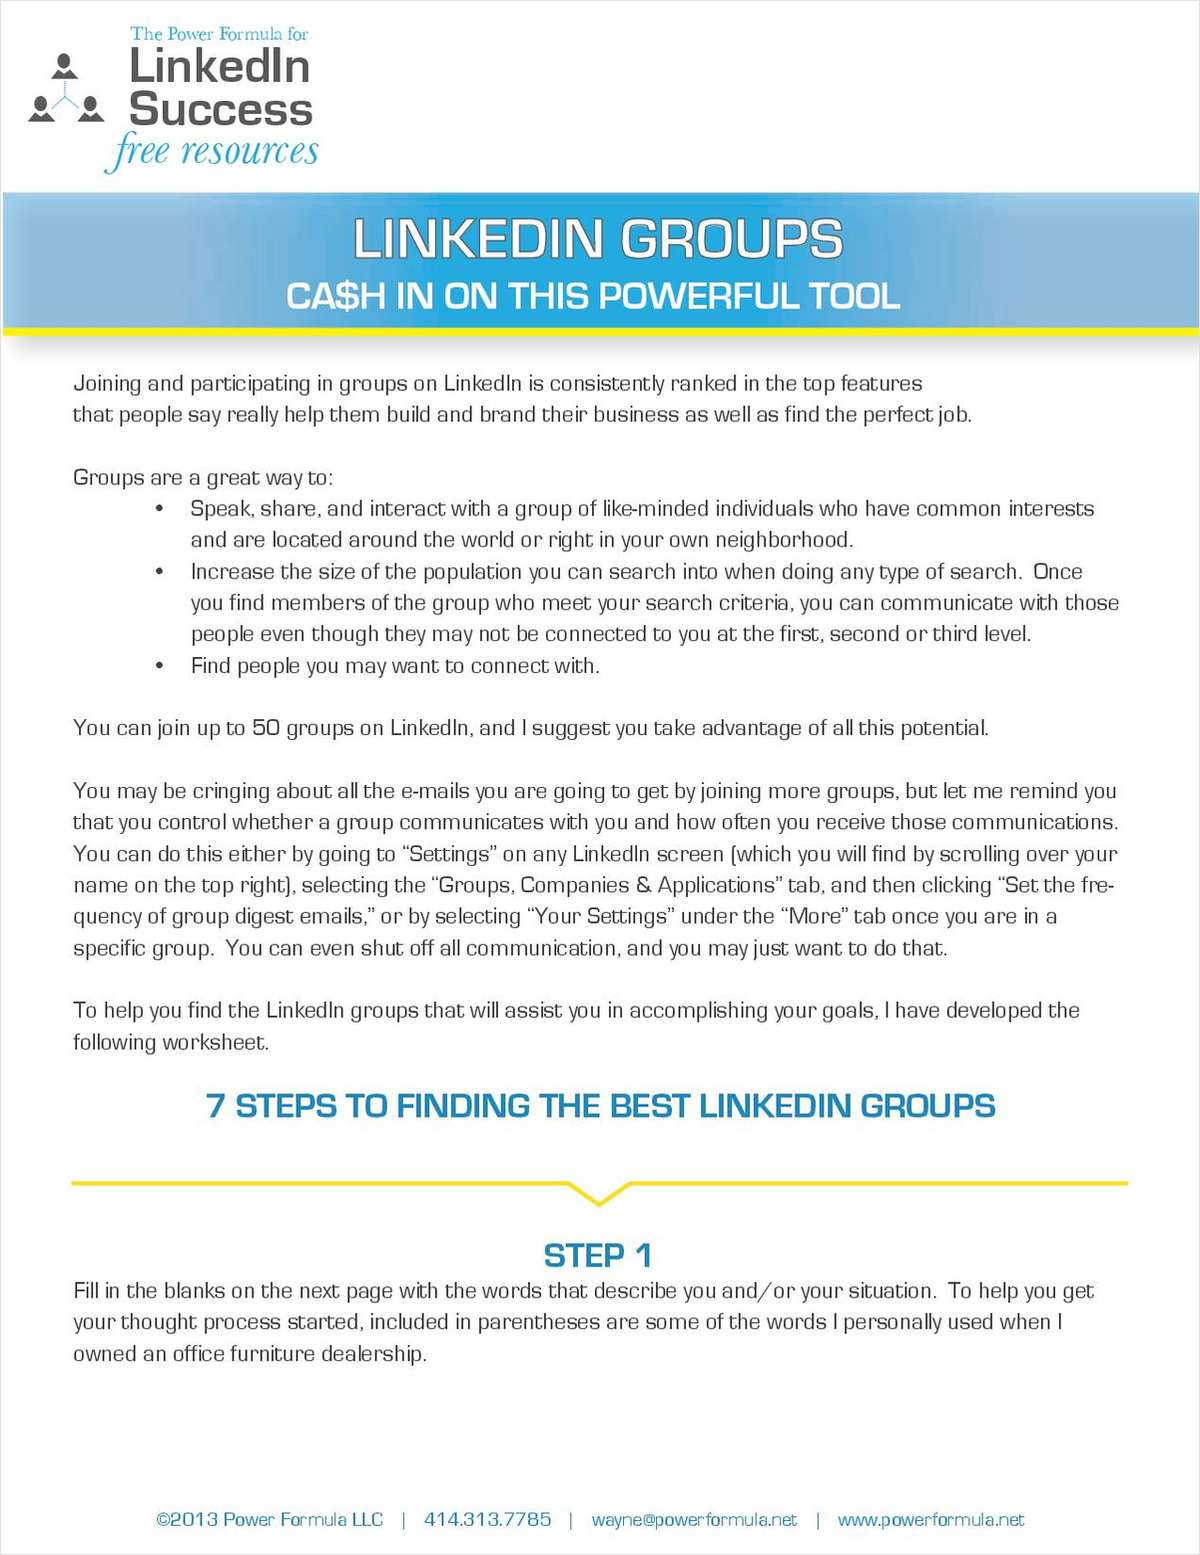 LinkedIn Groups: Cash in on this powerful tool